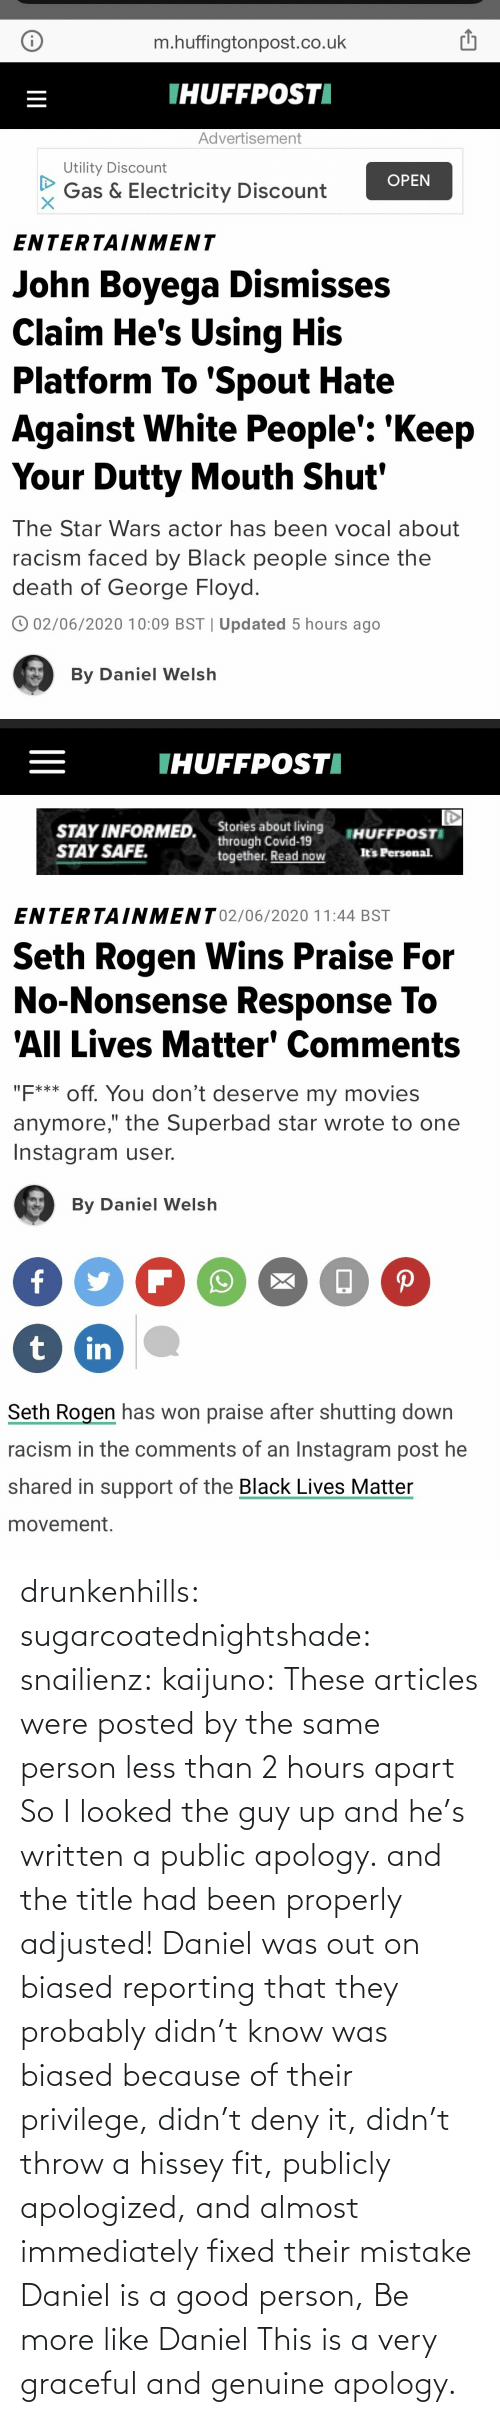 color: drunkenhills: sugarcoatednightshade:   snailienz:  kaijuno: These articles were posted by the same person less than 2 hours apart    So I looked the guy up and he's written a public apology. and the title had been properly adjusted!    Daniel was out on biased reporting that they probably didn't know was biased because of their privilege, didn't deny it, didn't throw a hissey fit, publicly apologized, and almost immediately fixed their mistake Daniel is a good person, Be more like Daniel     This is a very graceful and genuine apology.